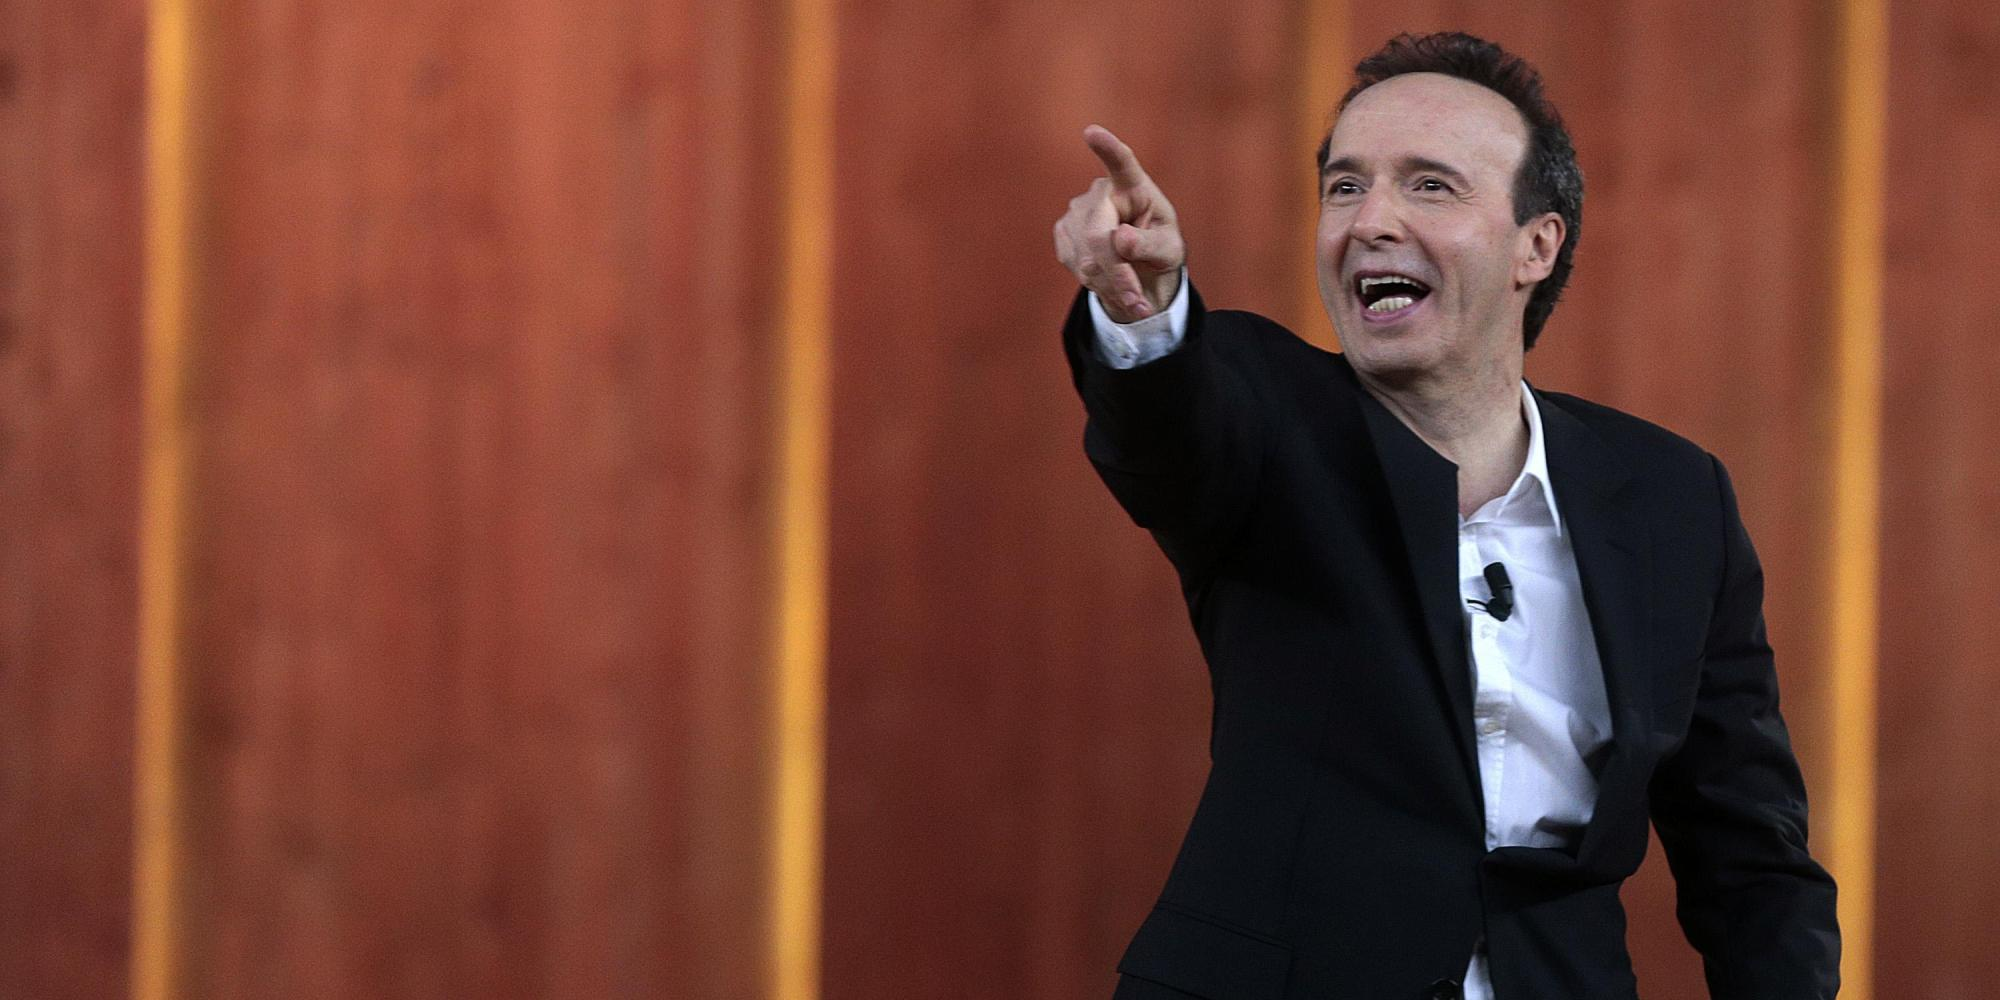 Roberto Benigni Full hd wallpapers